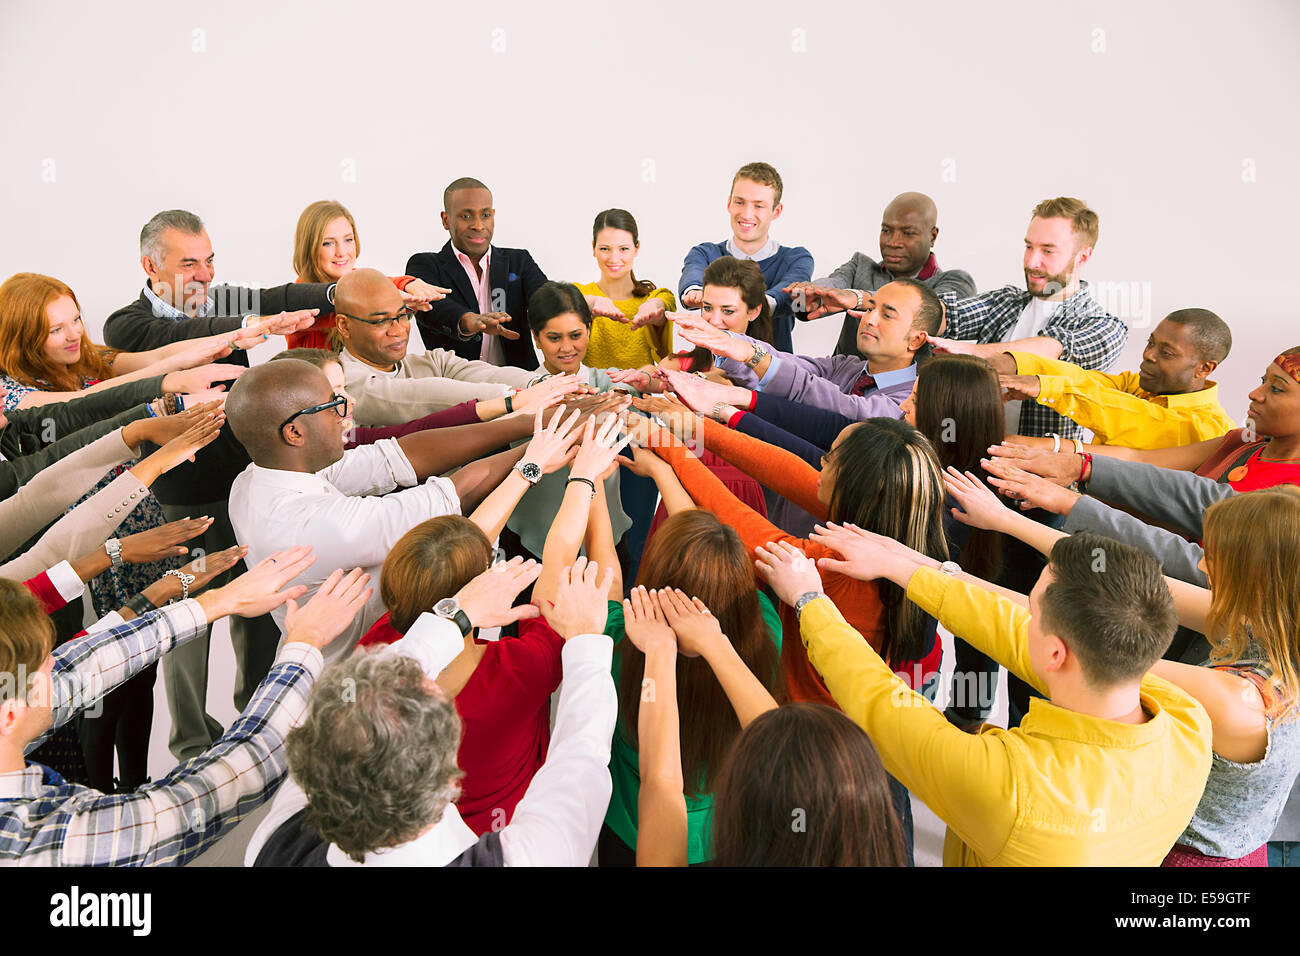 Business people connecting hands in huddle - Stock Image